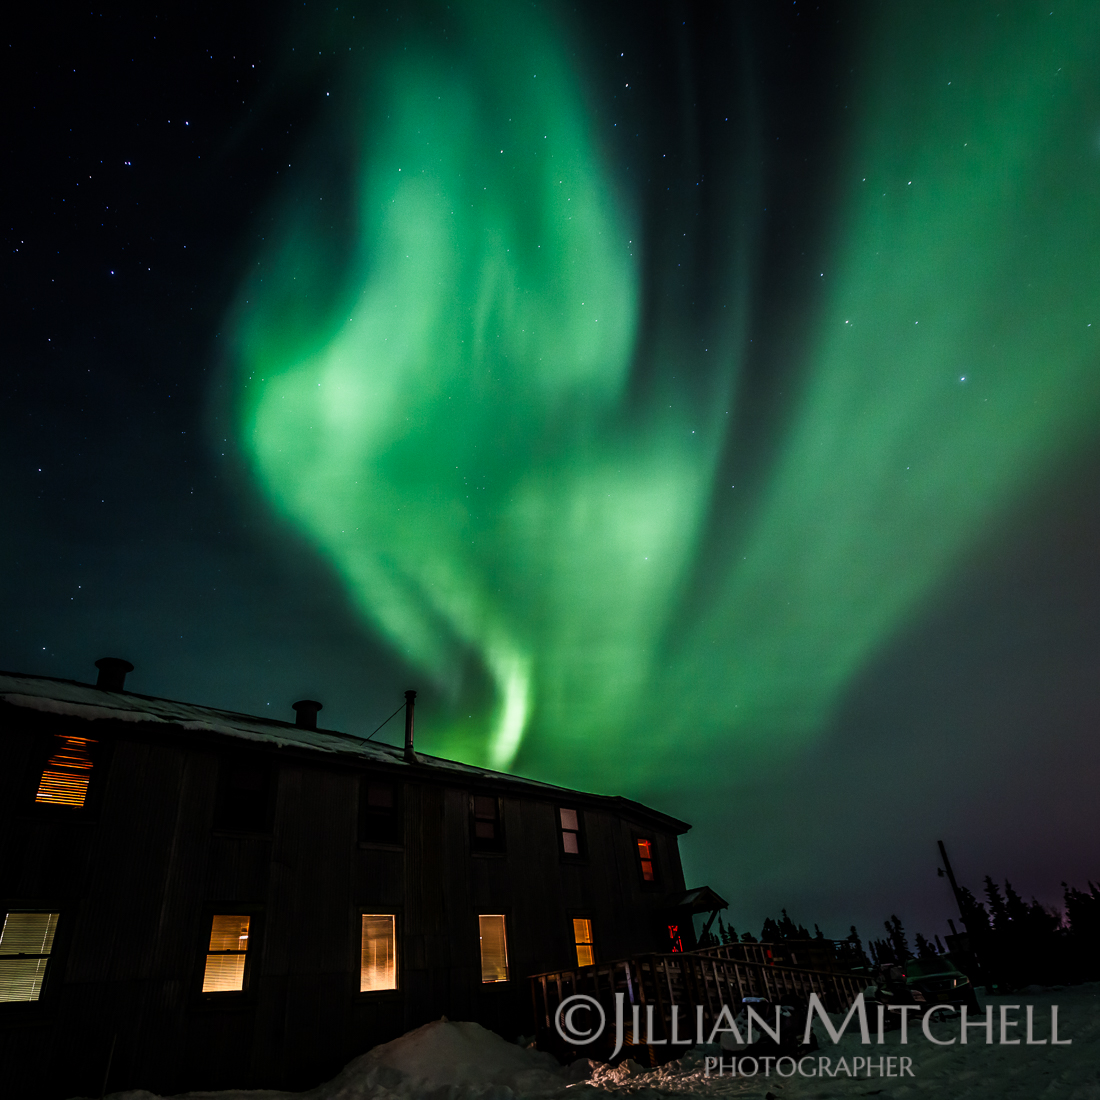 Northern Lights at Mount Aurora Lodge near Fairbanks, Alaska